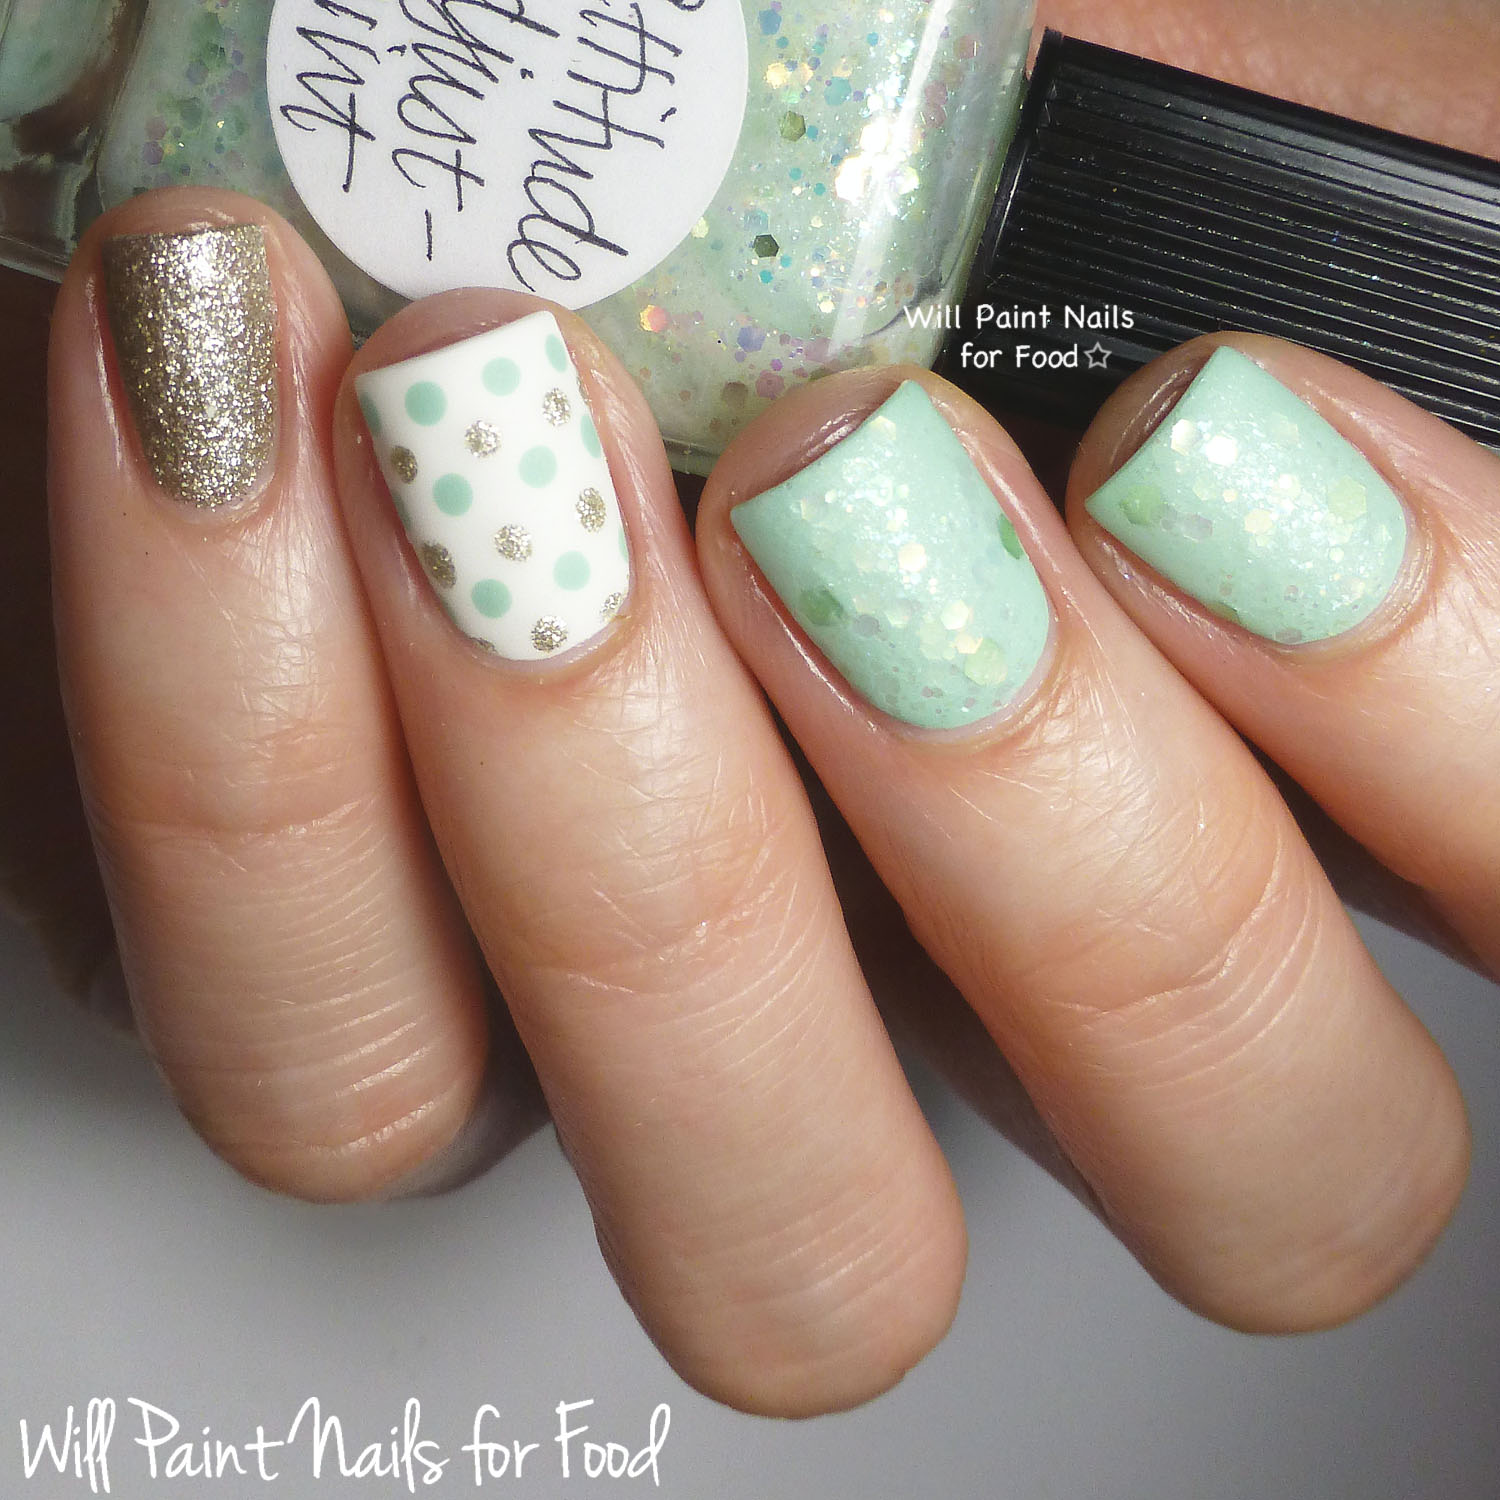 Will Paint Nails for Food